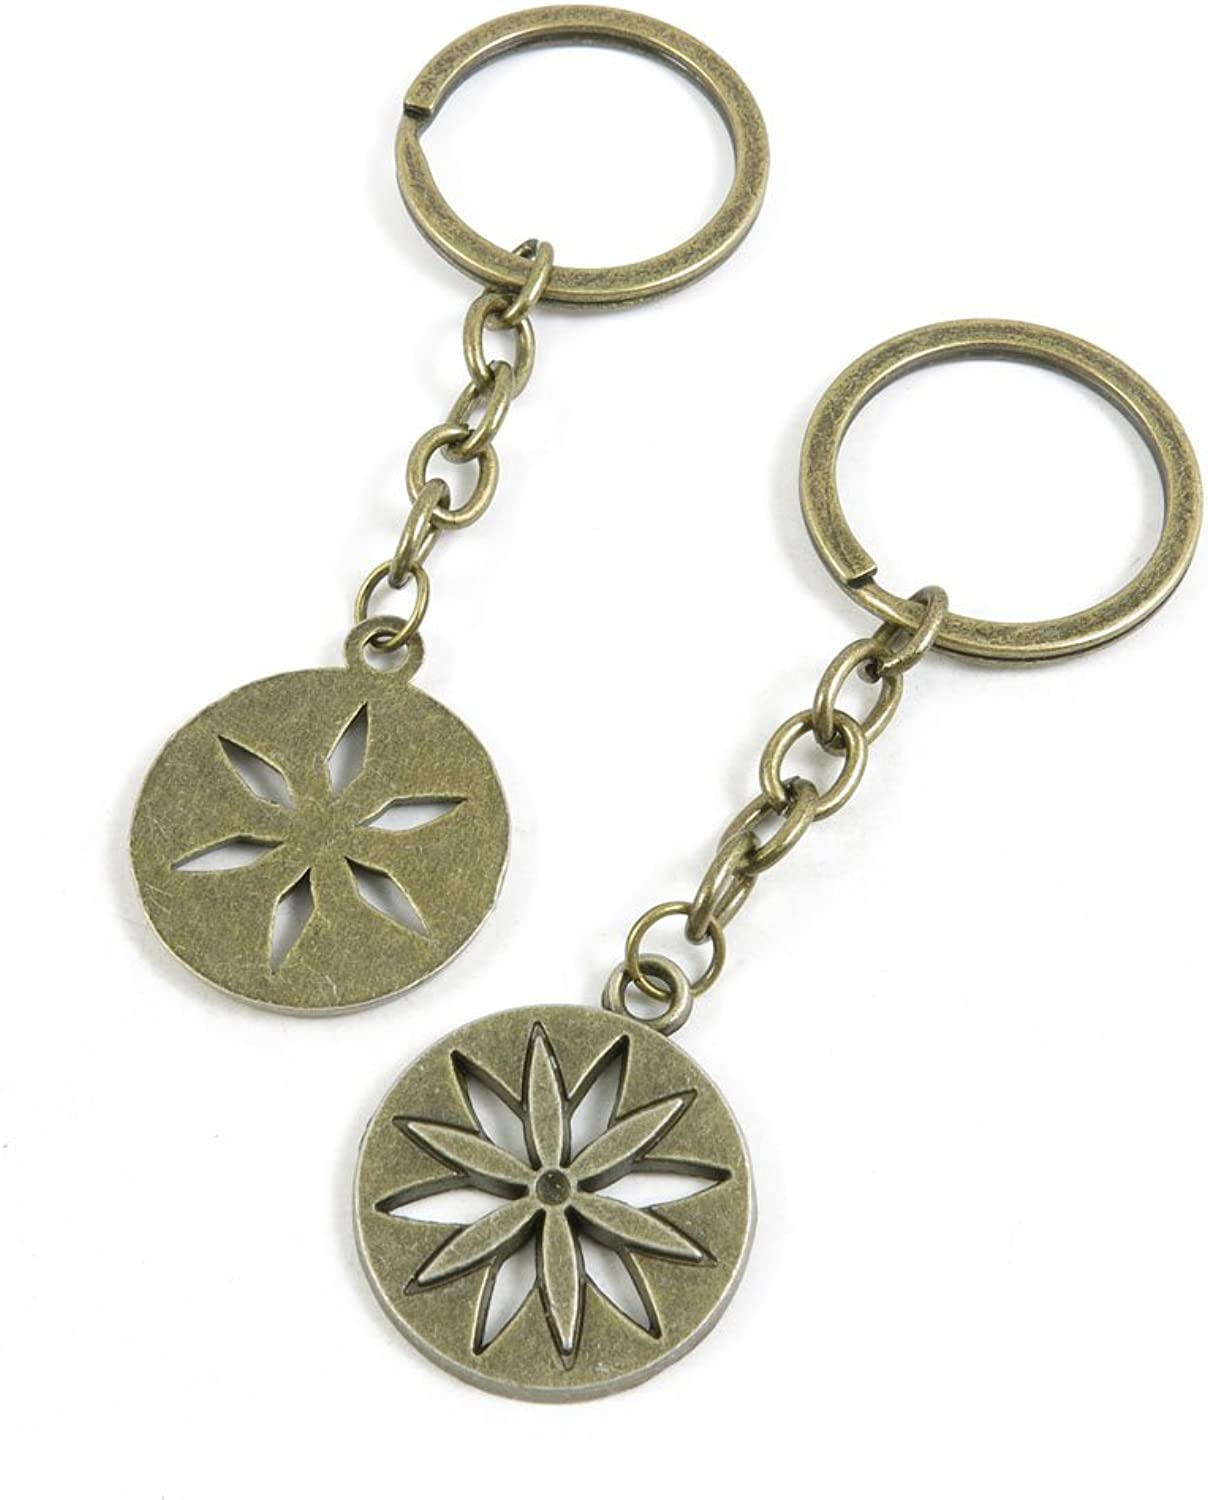 120 Pieces Fashion Jewelry Keyring Keychain Door Car Key Tag Ring Chain Supplier Supply Wholesale Bulk Lots E3ST2 Flower Round Tags